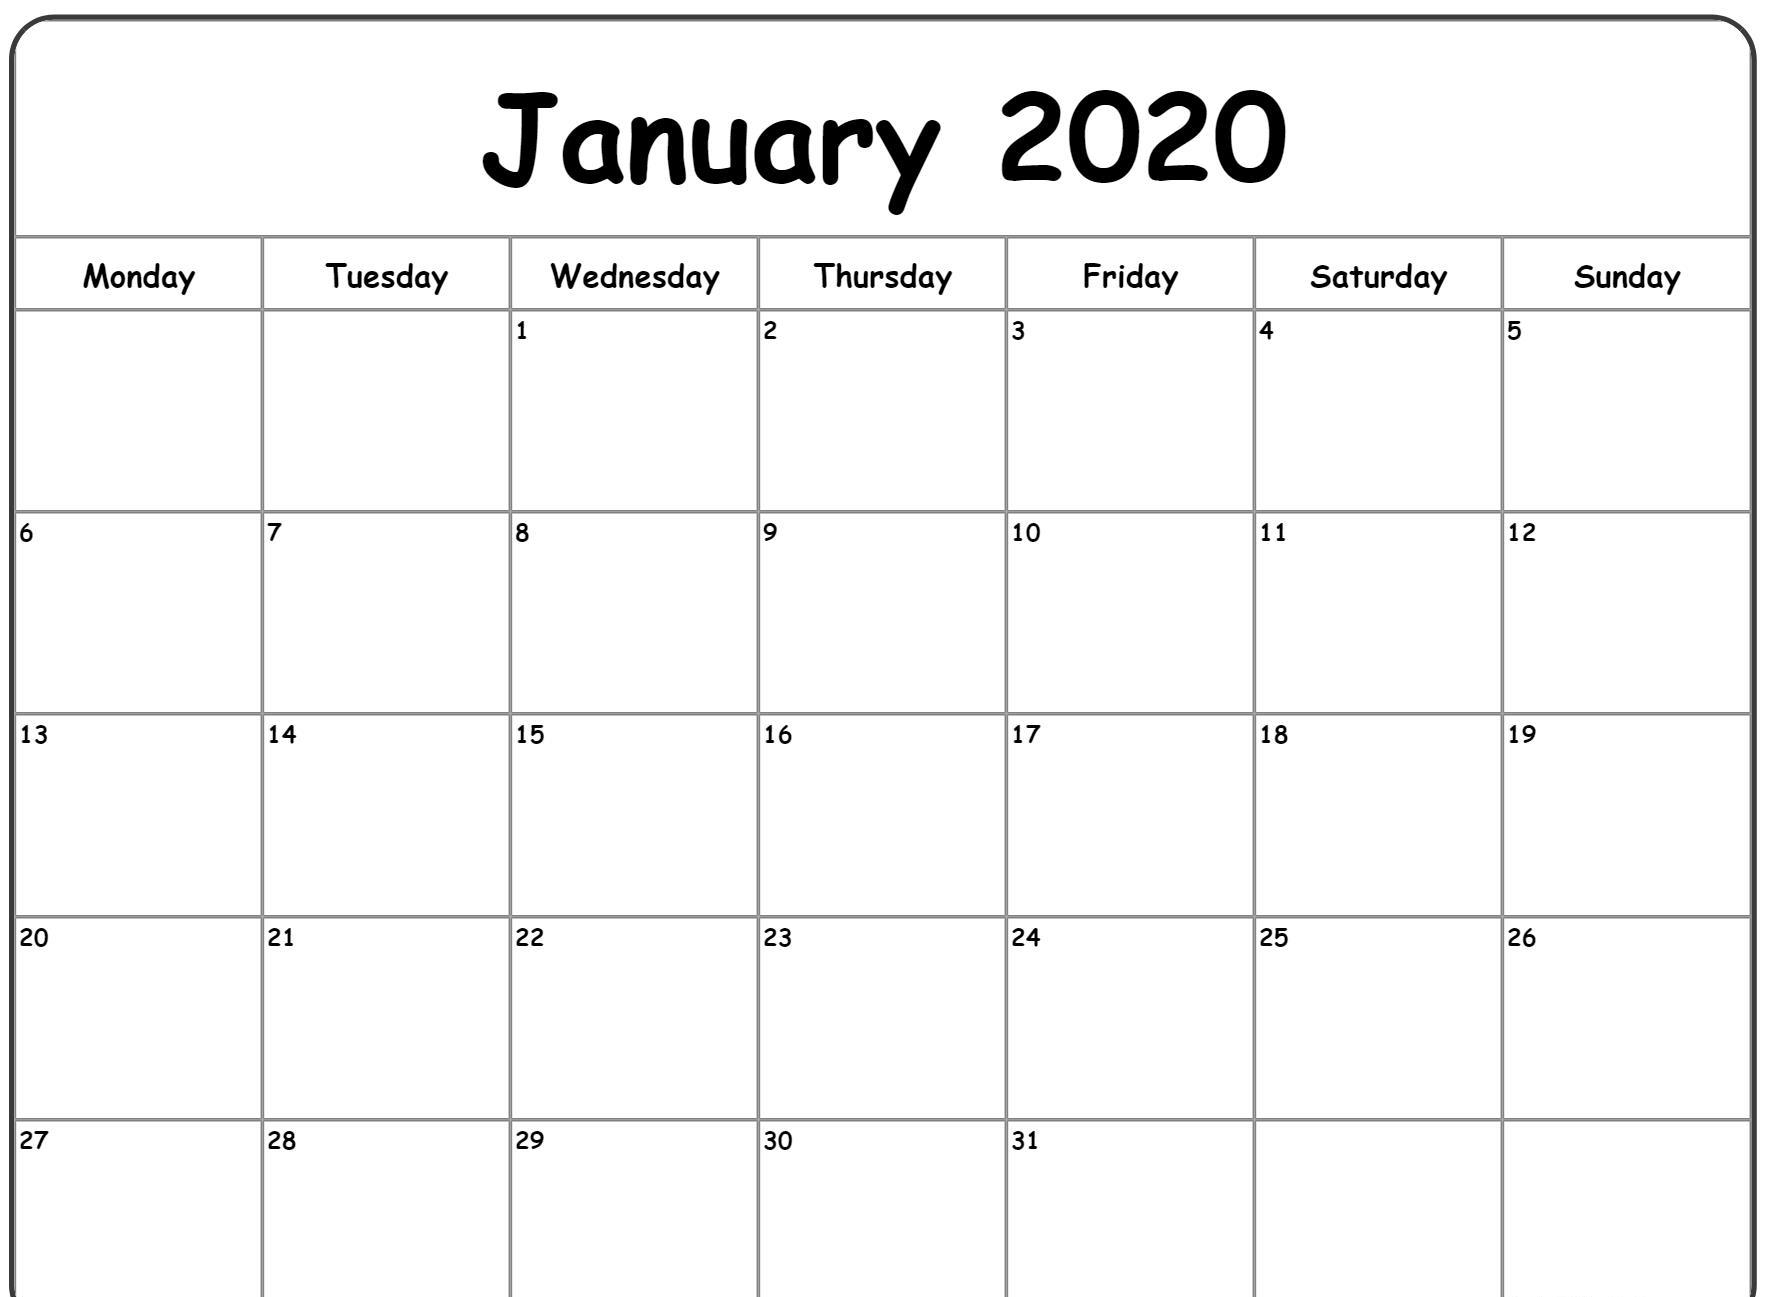 Free Blank January Calendar 2020 Printable Template in Vertex 2020 Calendars Monday Through Sunday